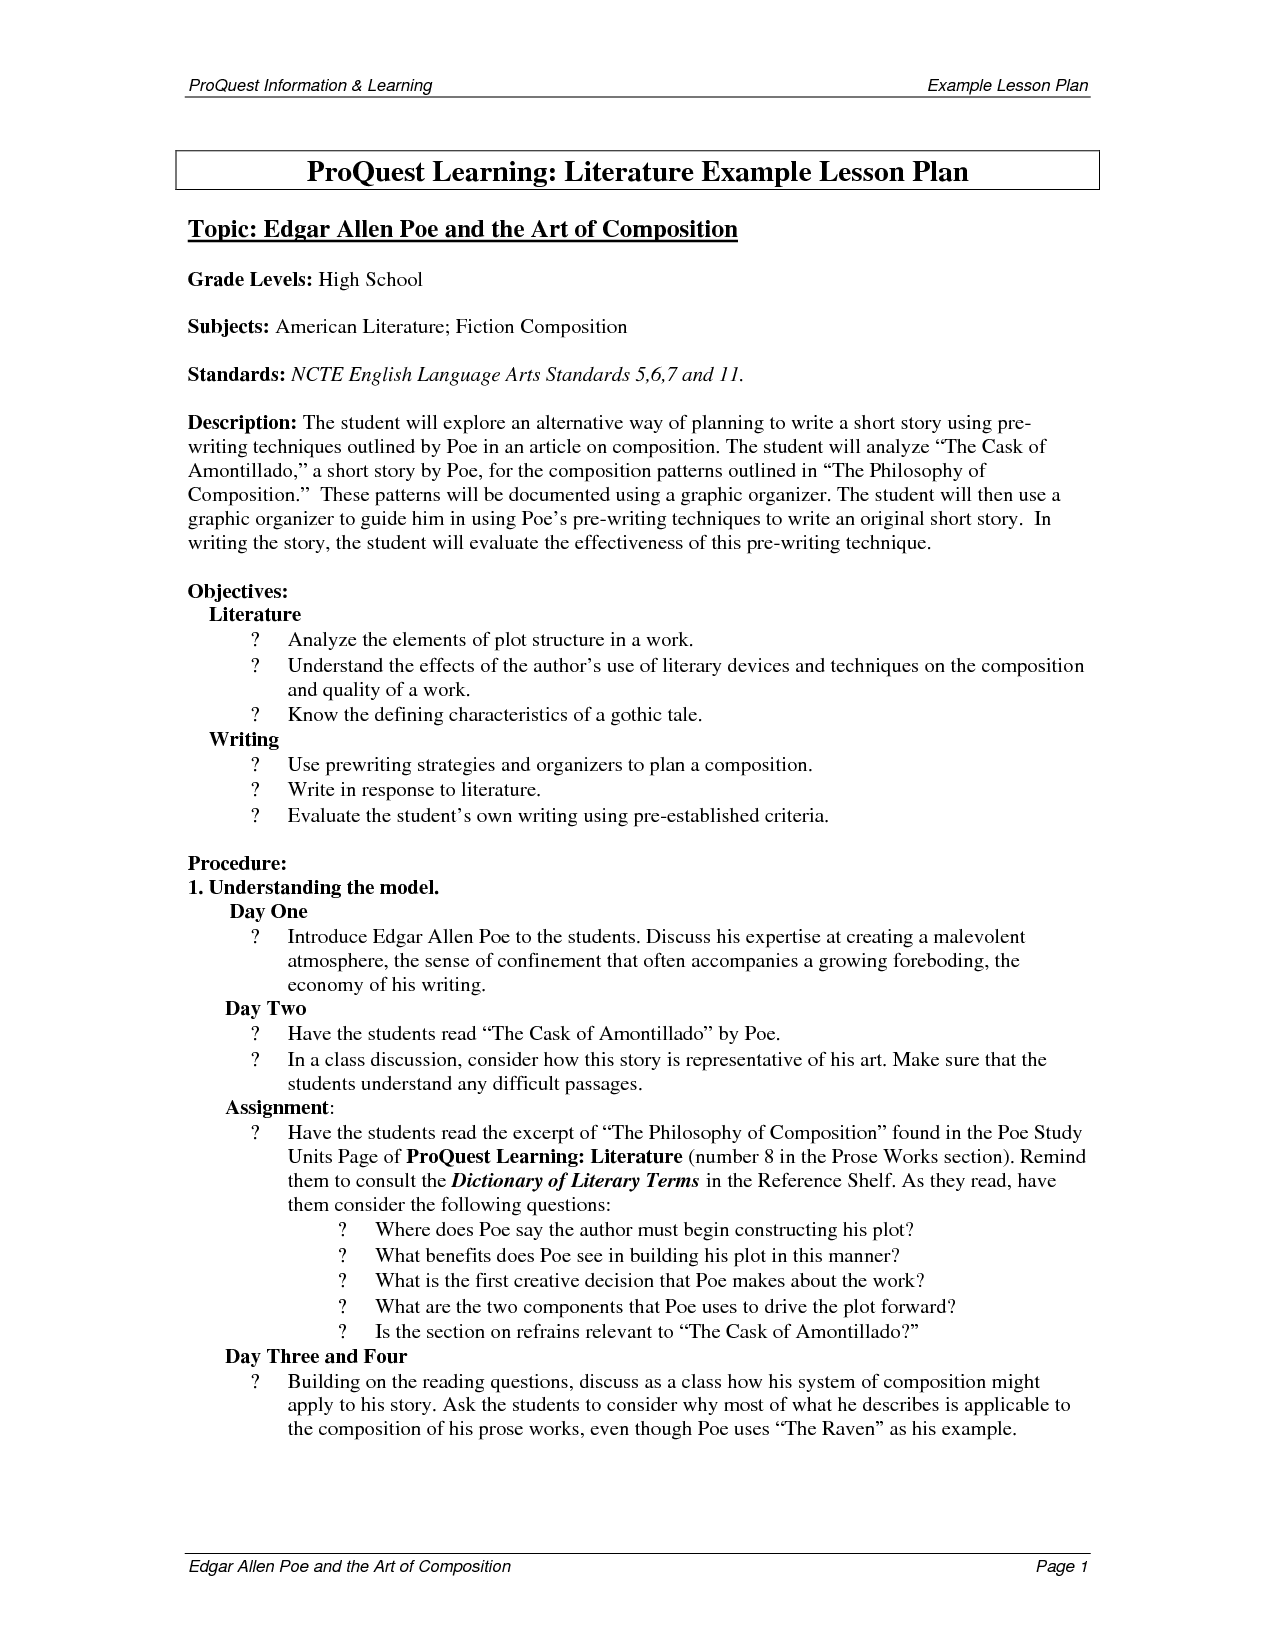 lesson plans for american literature   ... Information Learning Example  Lesson Plan ProQu…   American literature [ 1650 x 1275 Pixel ]